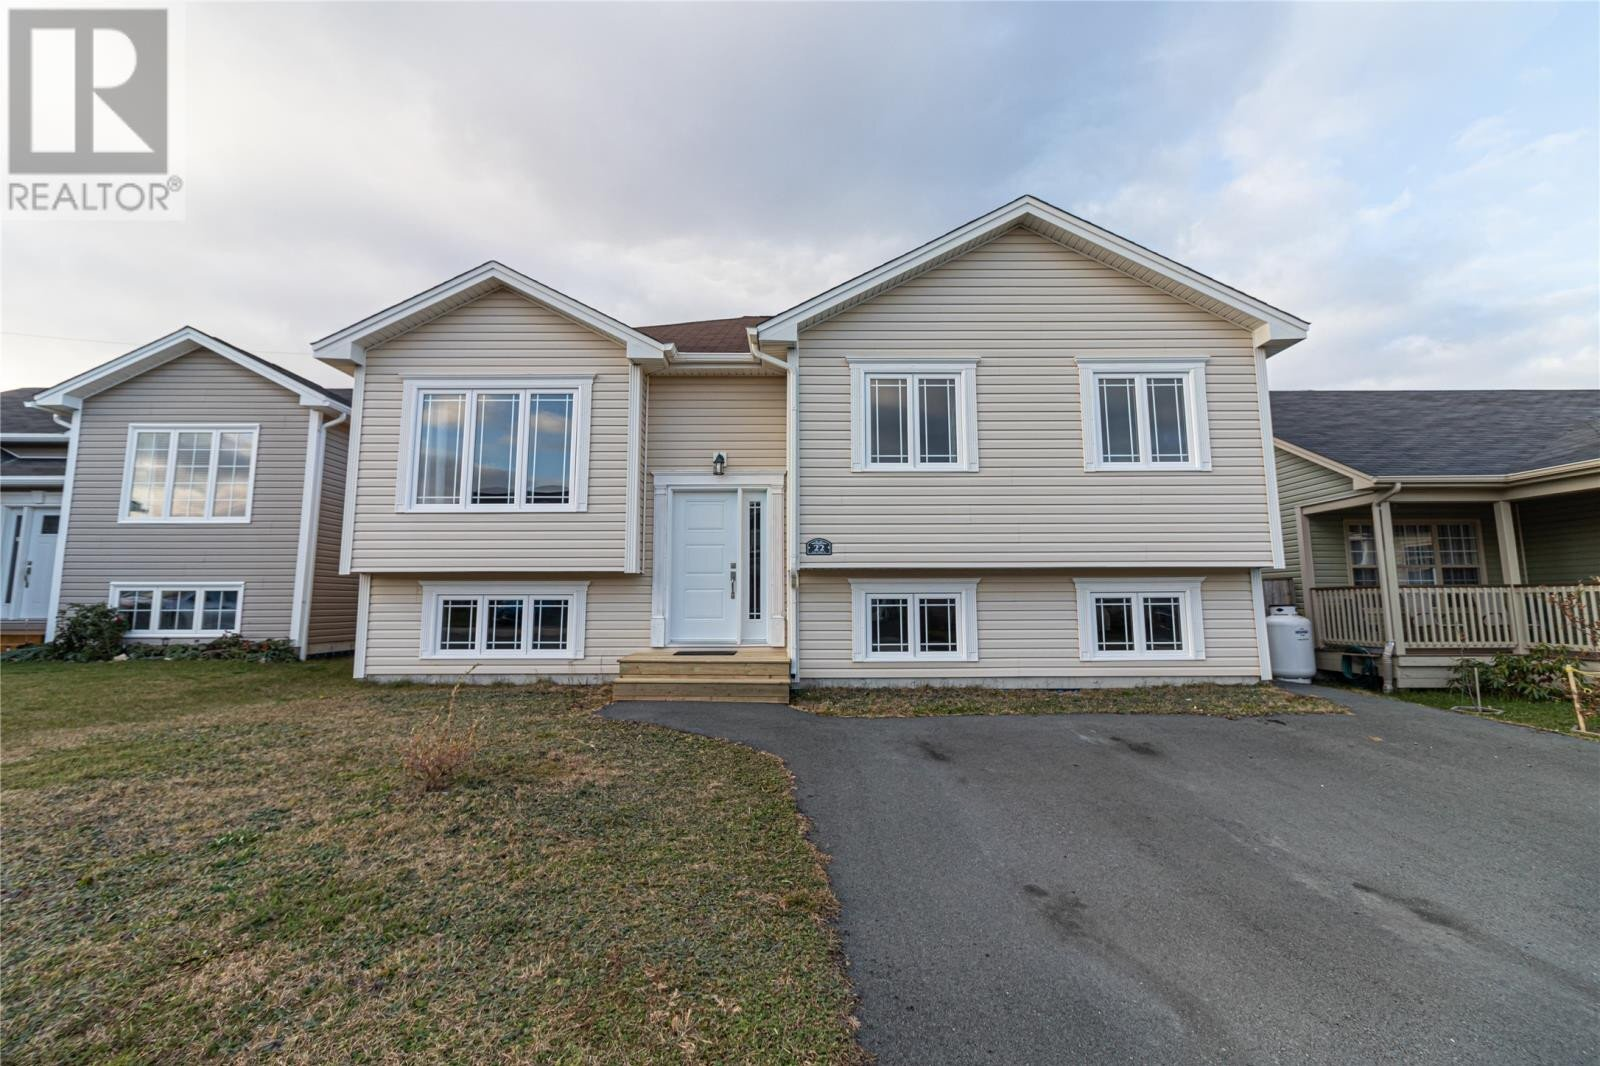 House for sale at 22 Rose Abbey St St. John's Newfoundland - MLS: 1223312